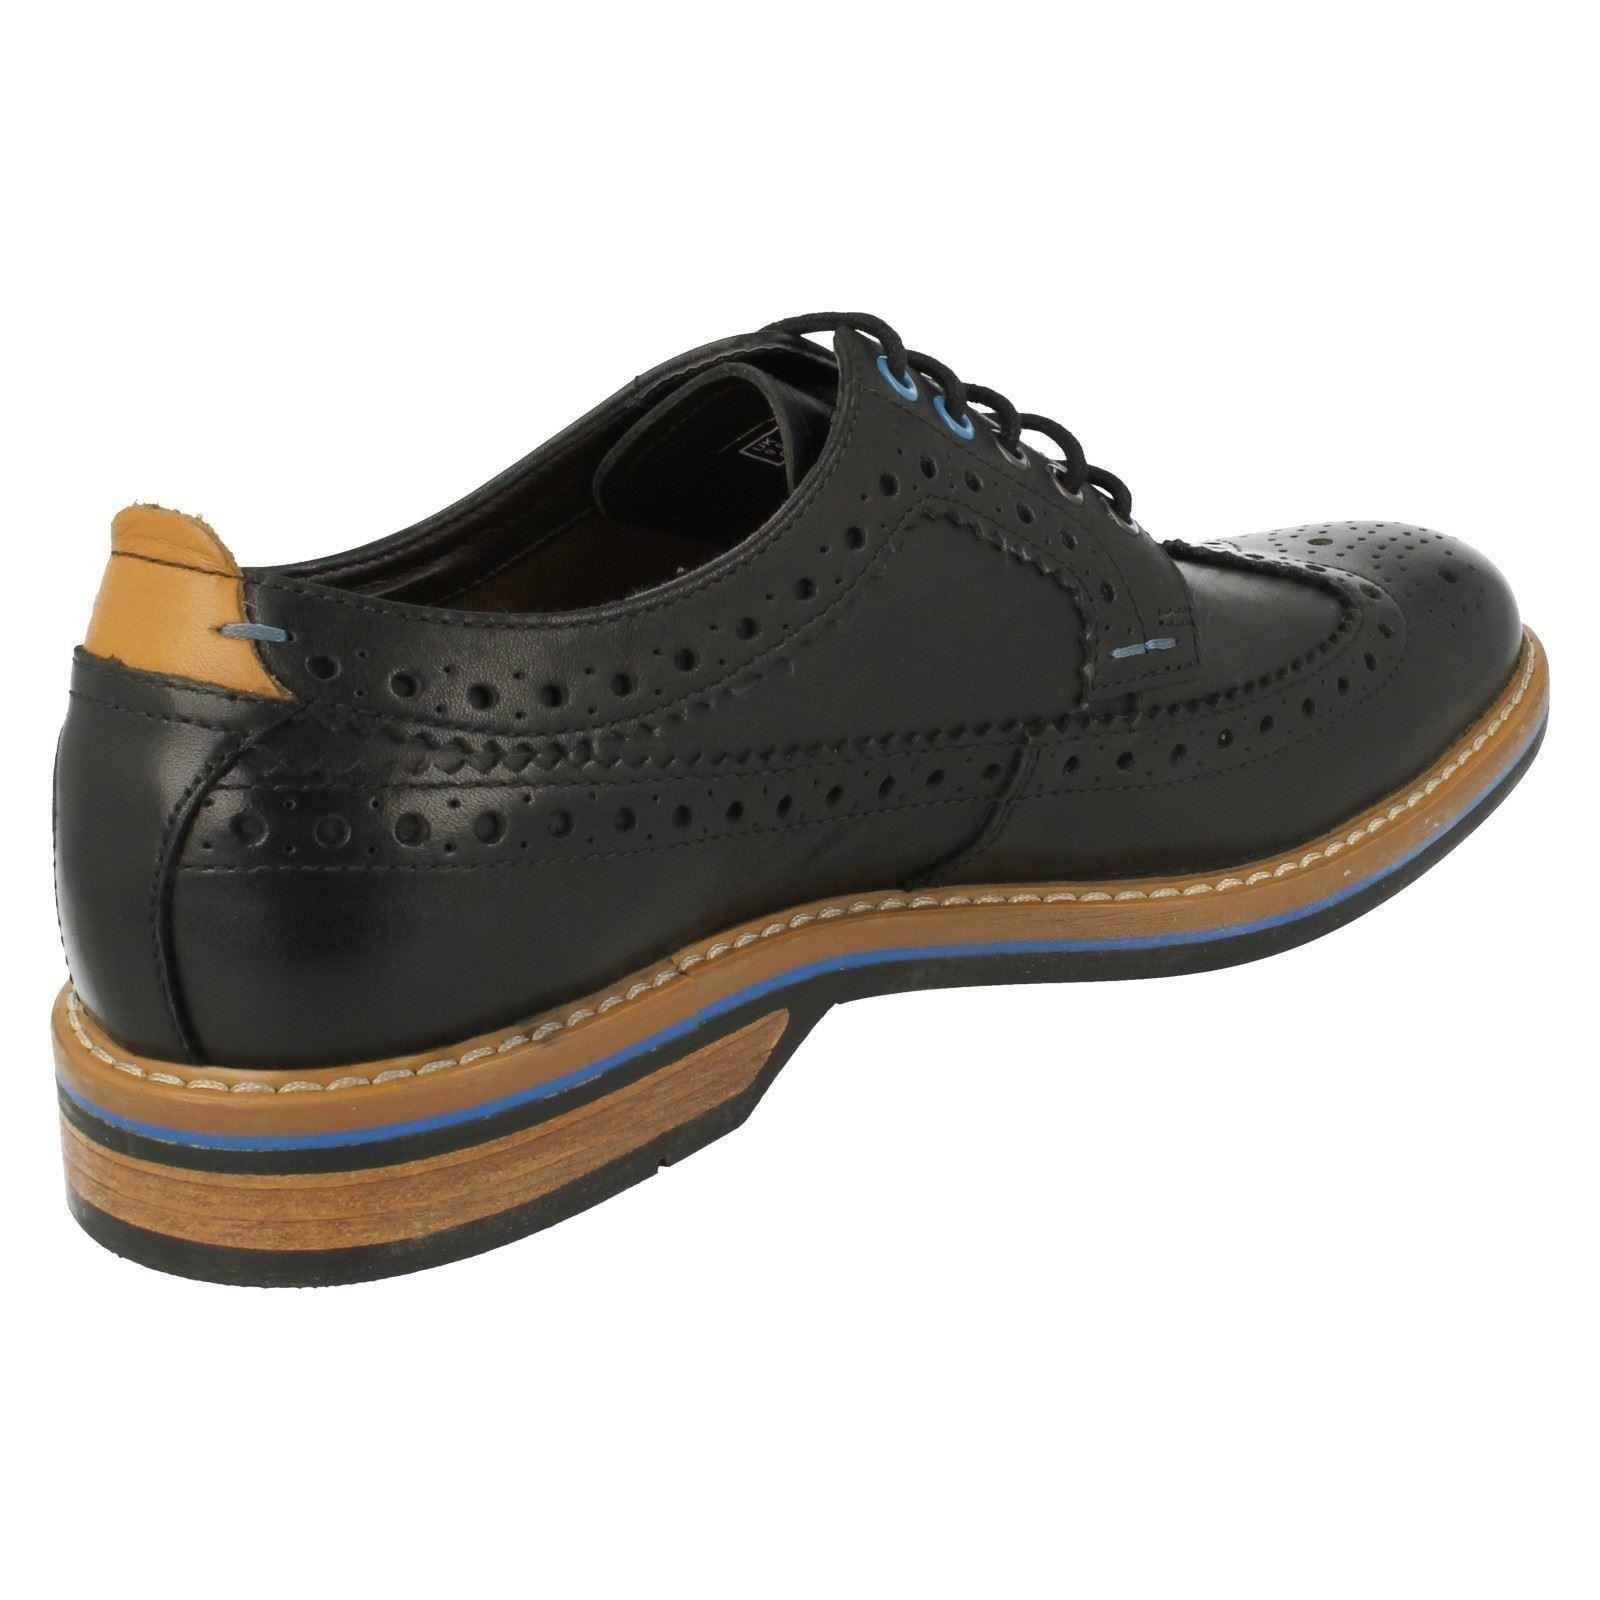 Herren Detailed Clarks Smart Casual Brogue Detailed Herren Schuhes Pitney Limit 6f0533